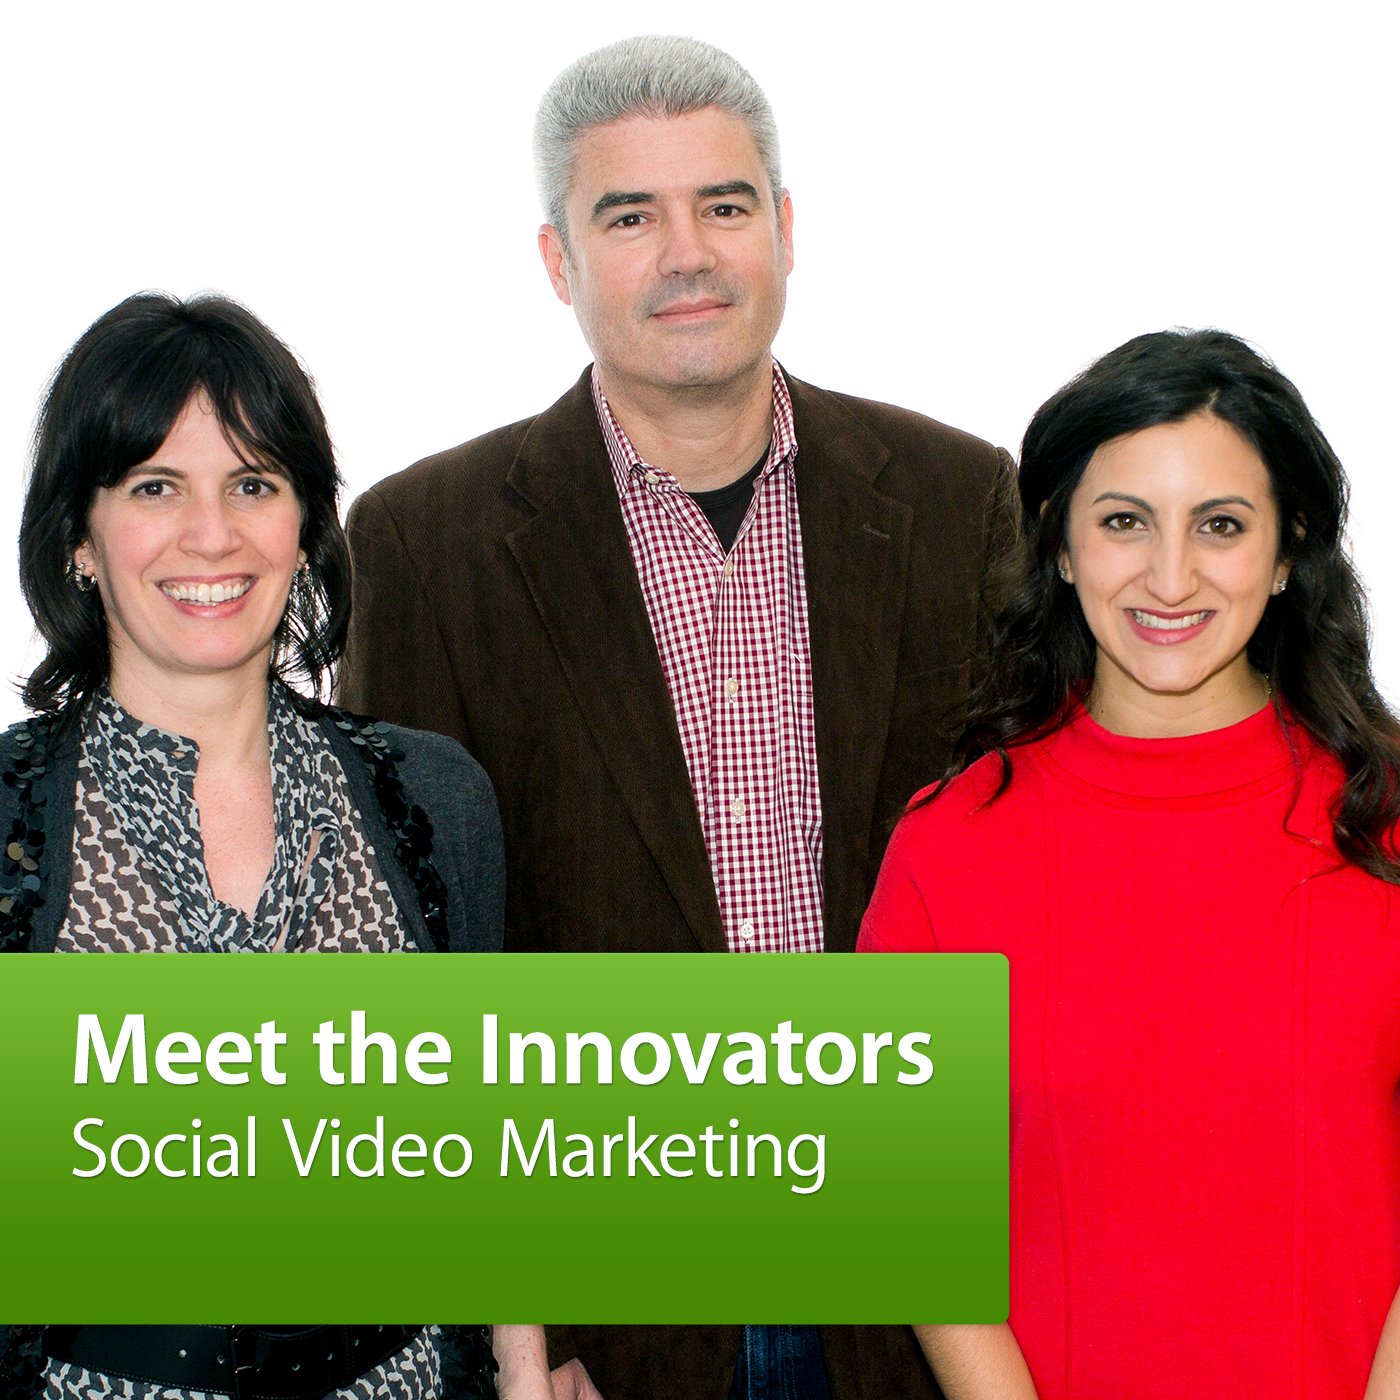 Meet the Innovators: Social Video Marketing